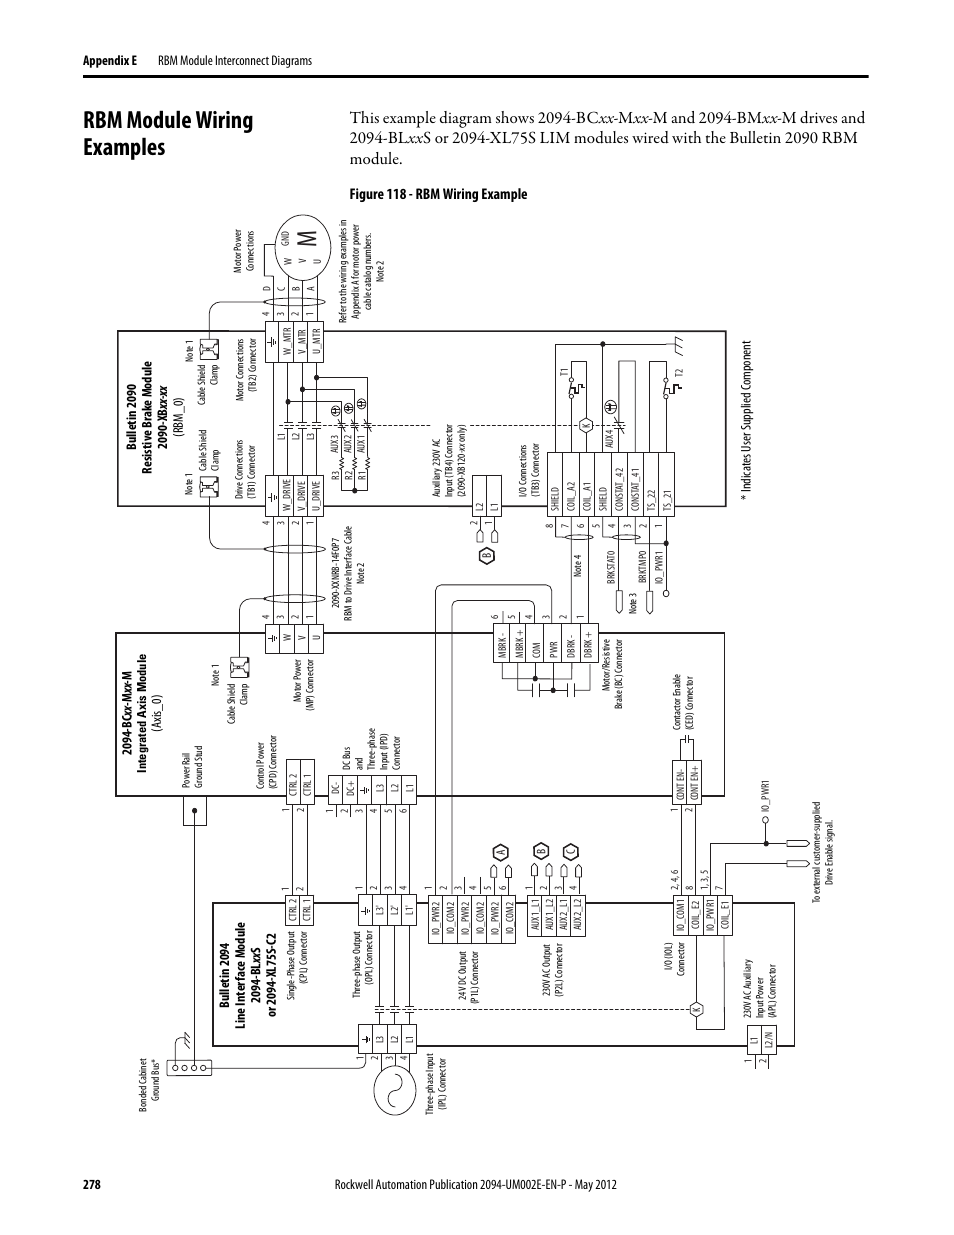 Rbm Module Wiring Examples Figure 118 Example Diagram Ac Modules Rockwell Automation 2094